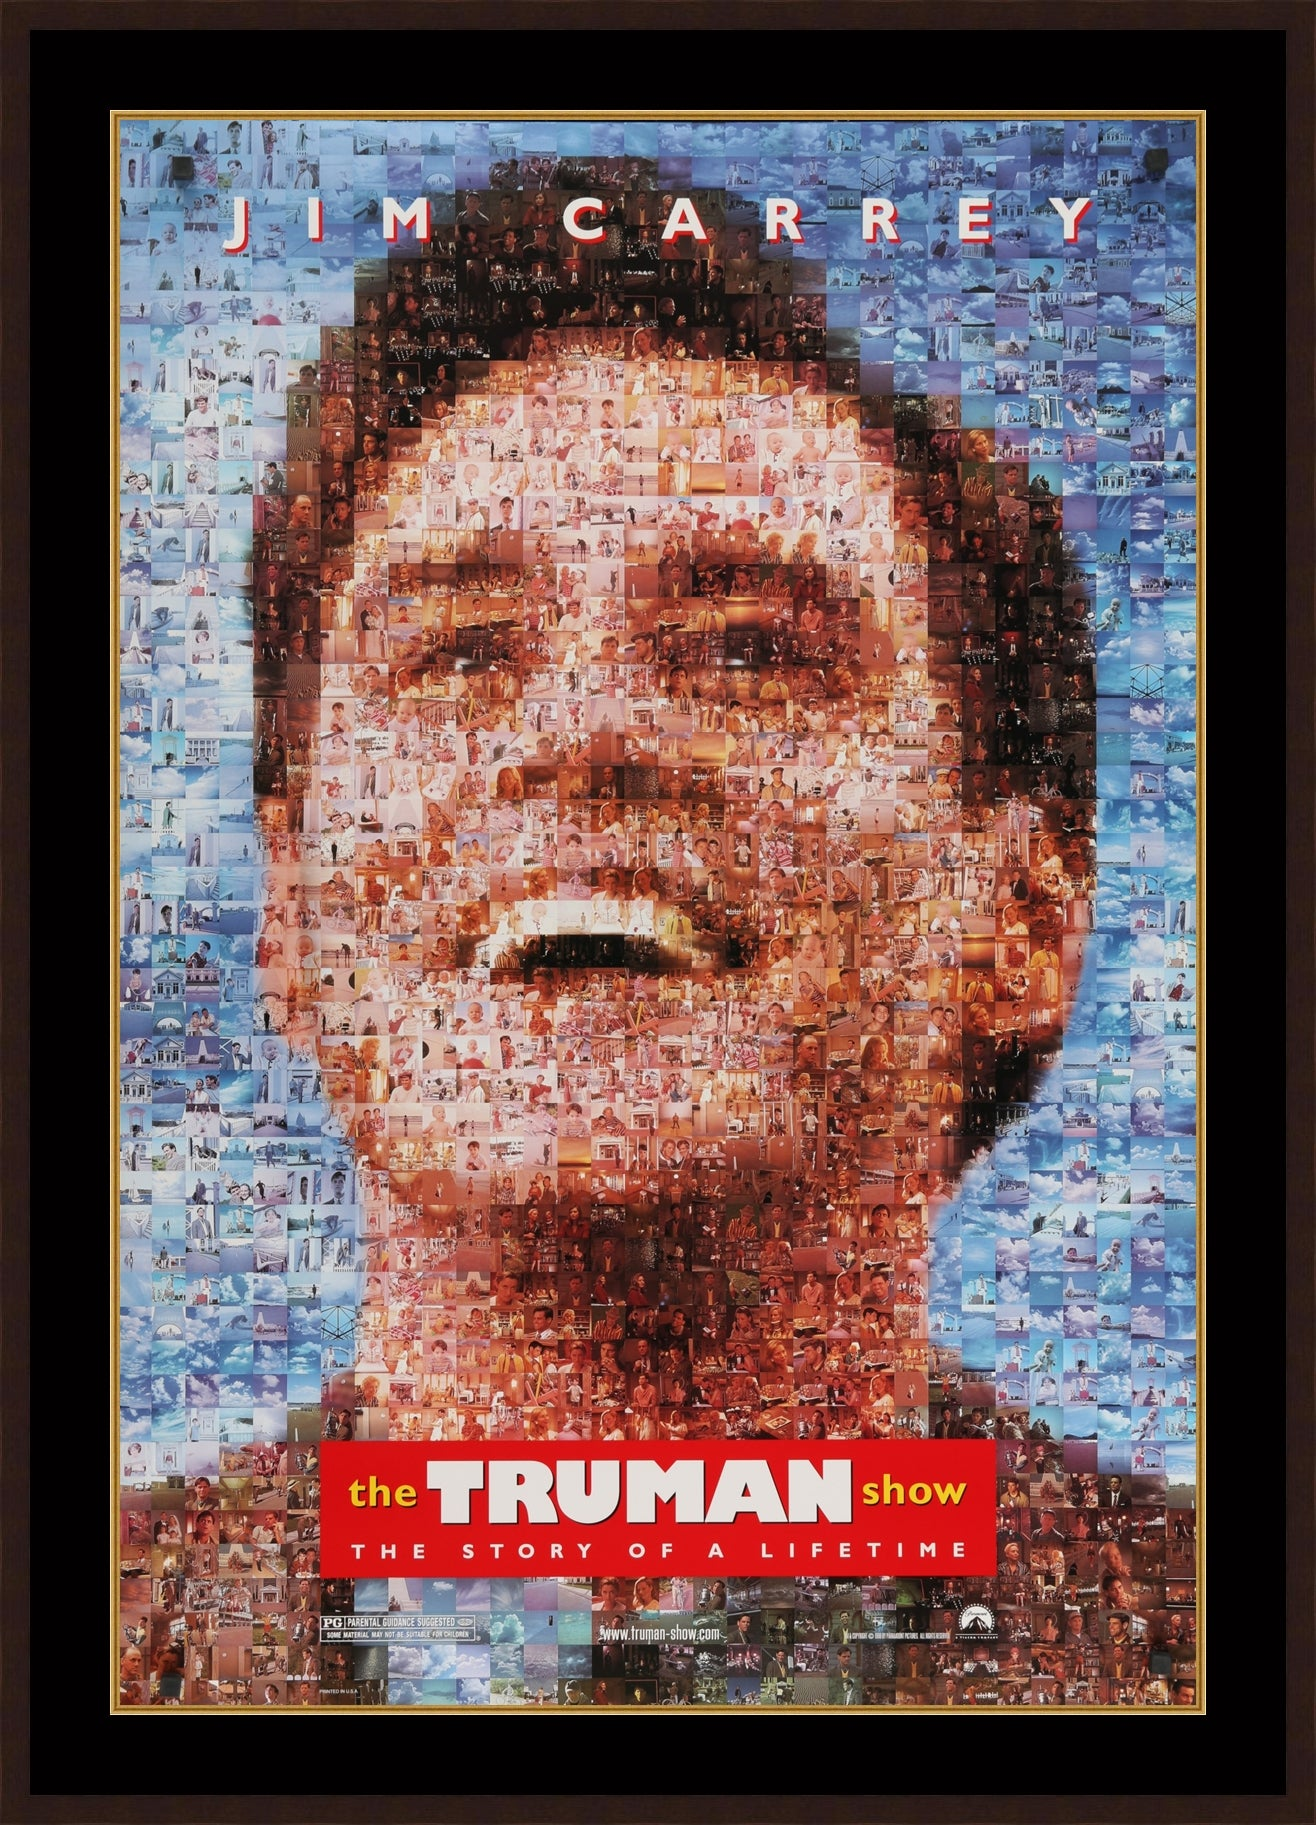 An original movie poster for The Truman Show